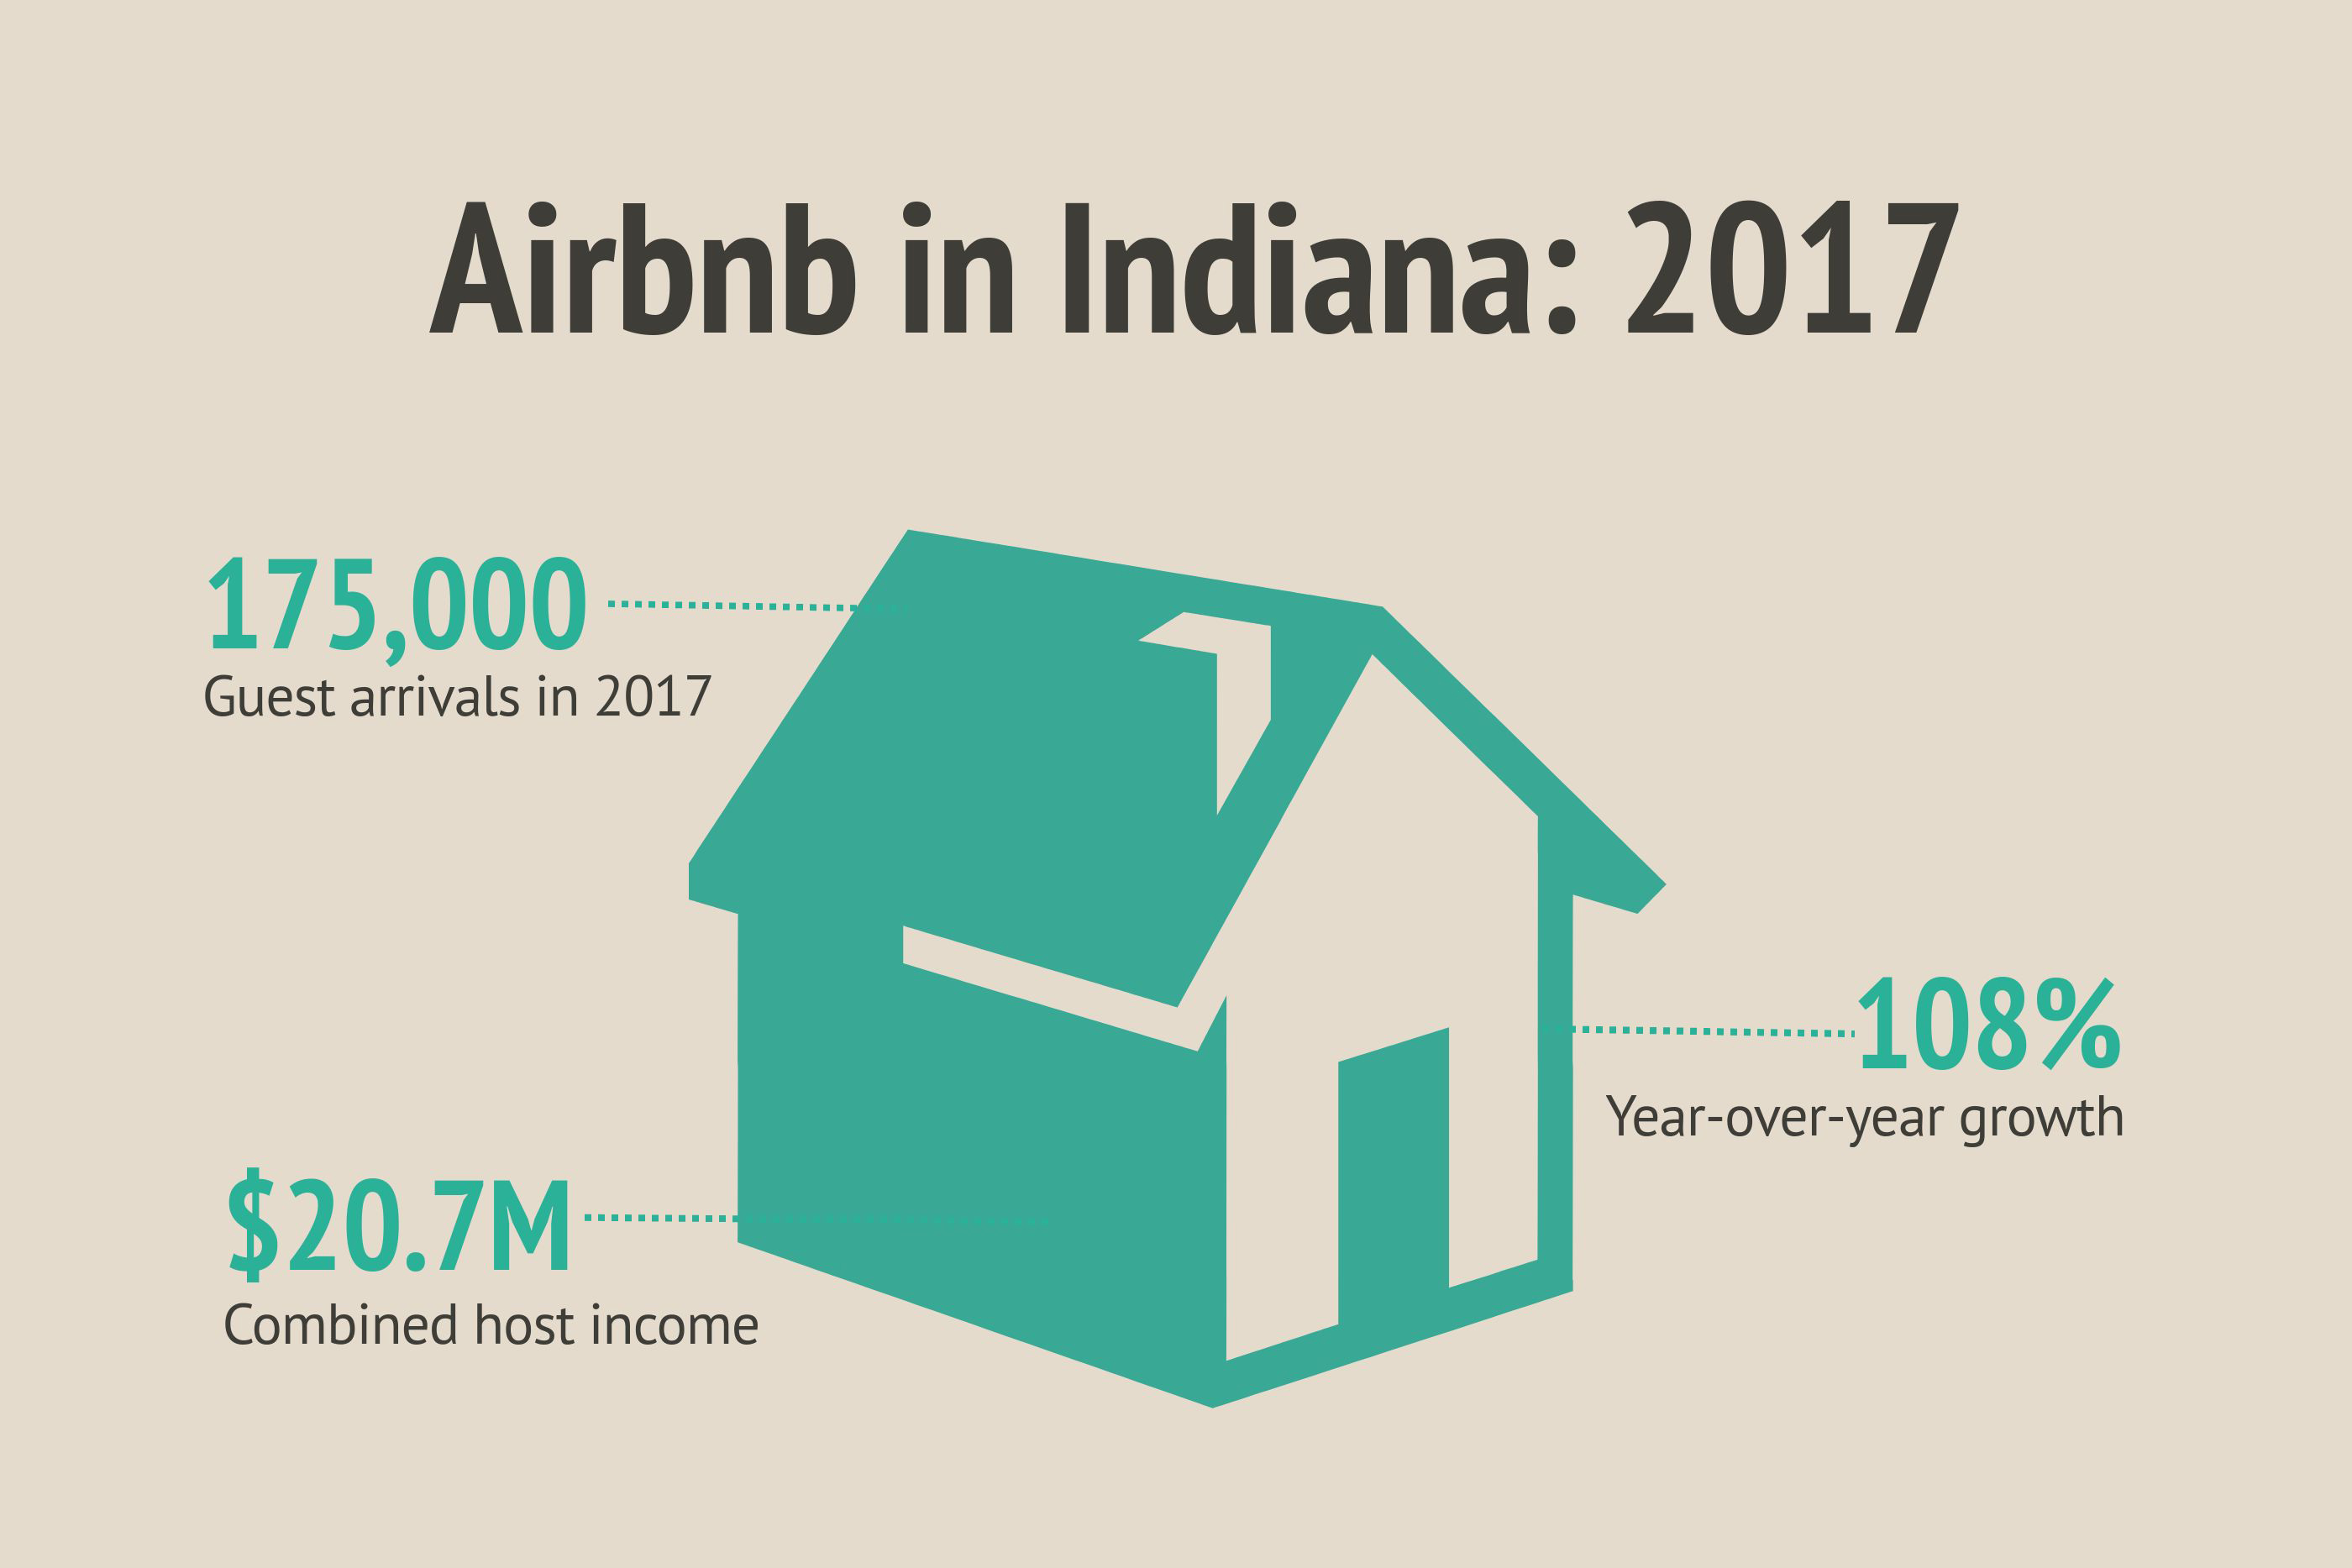 Airbnb reports rapid growth for the short-term rental service in Indiana this year.